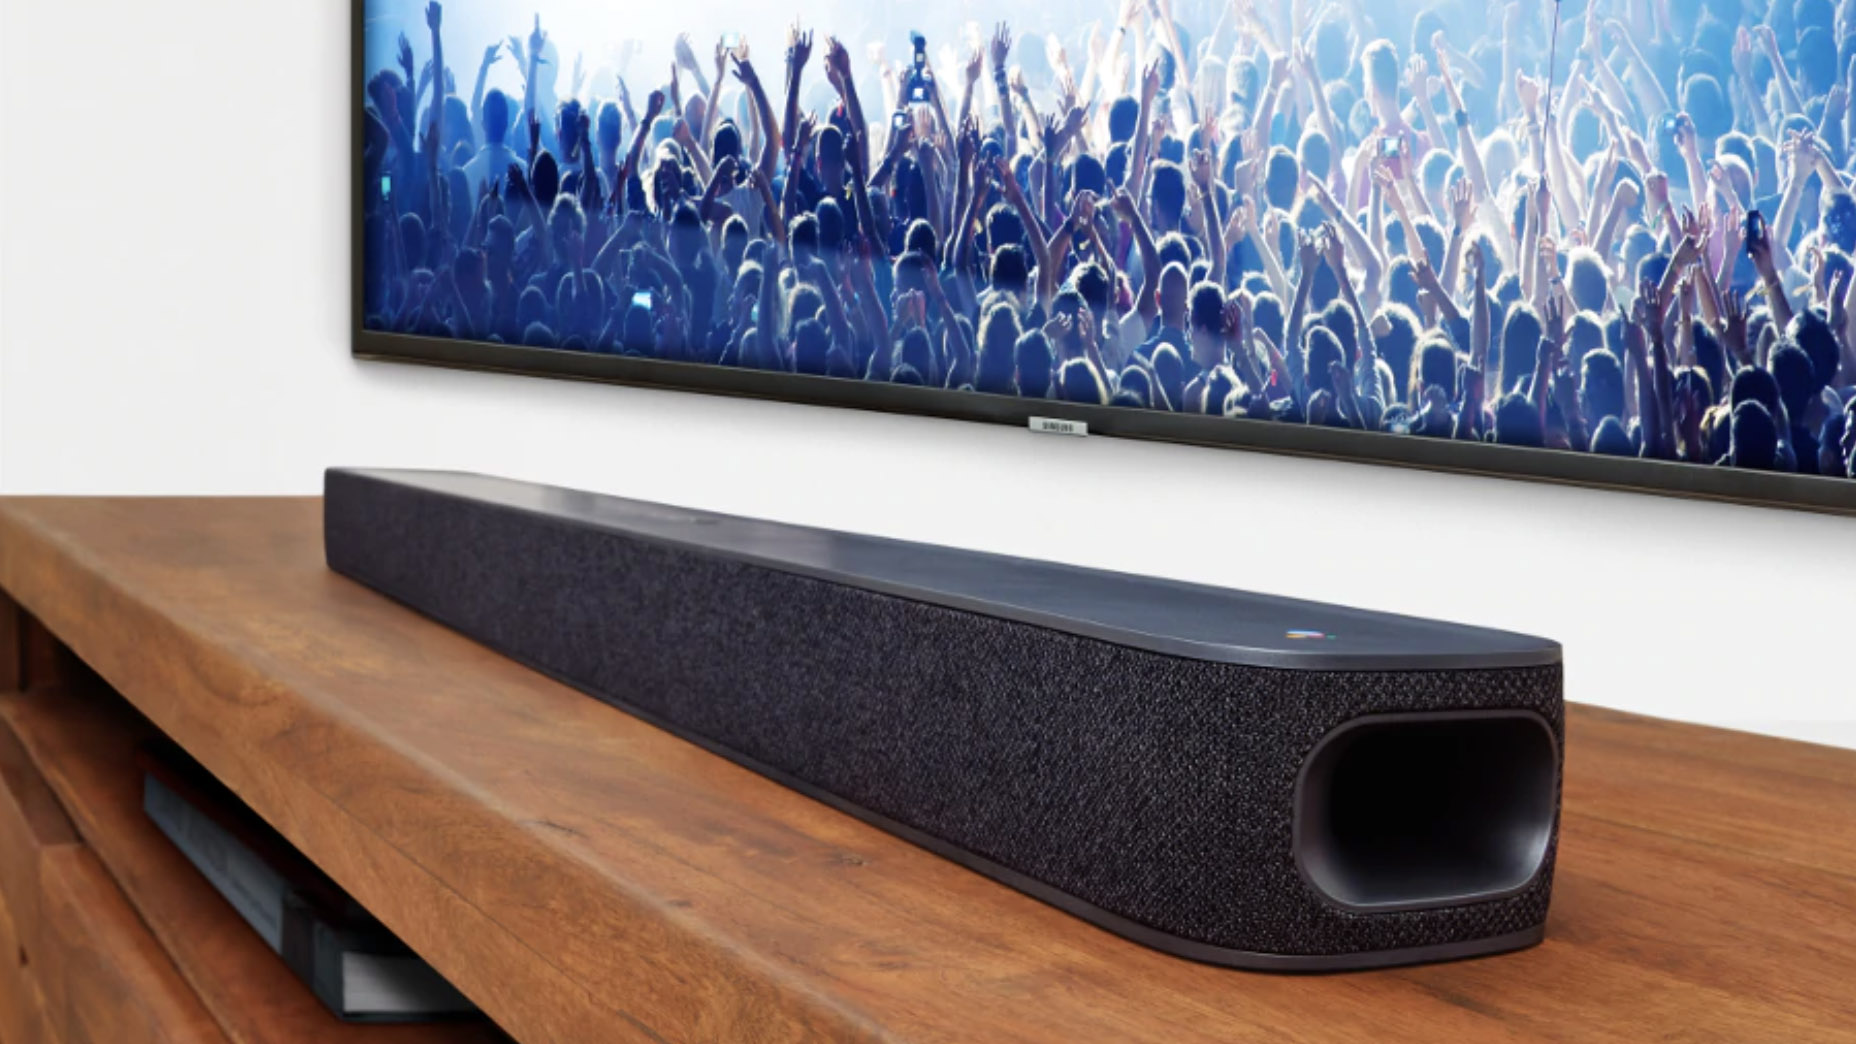 ds7NoLtVwYmoBCPYwdg6ZQ - JBL's Google Assistant soundbar finally released after a year-long delay